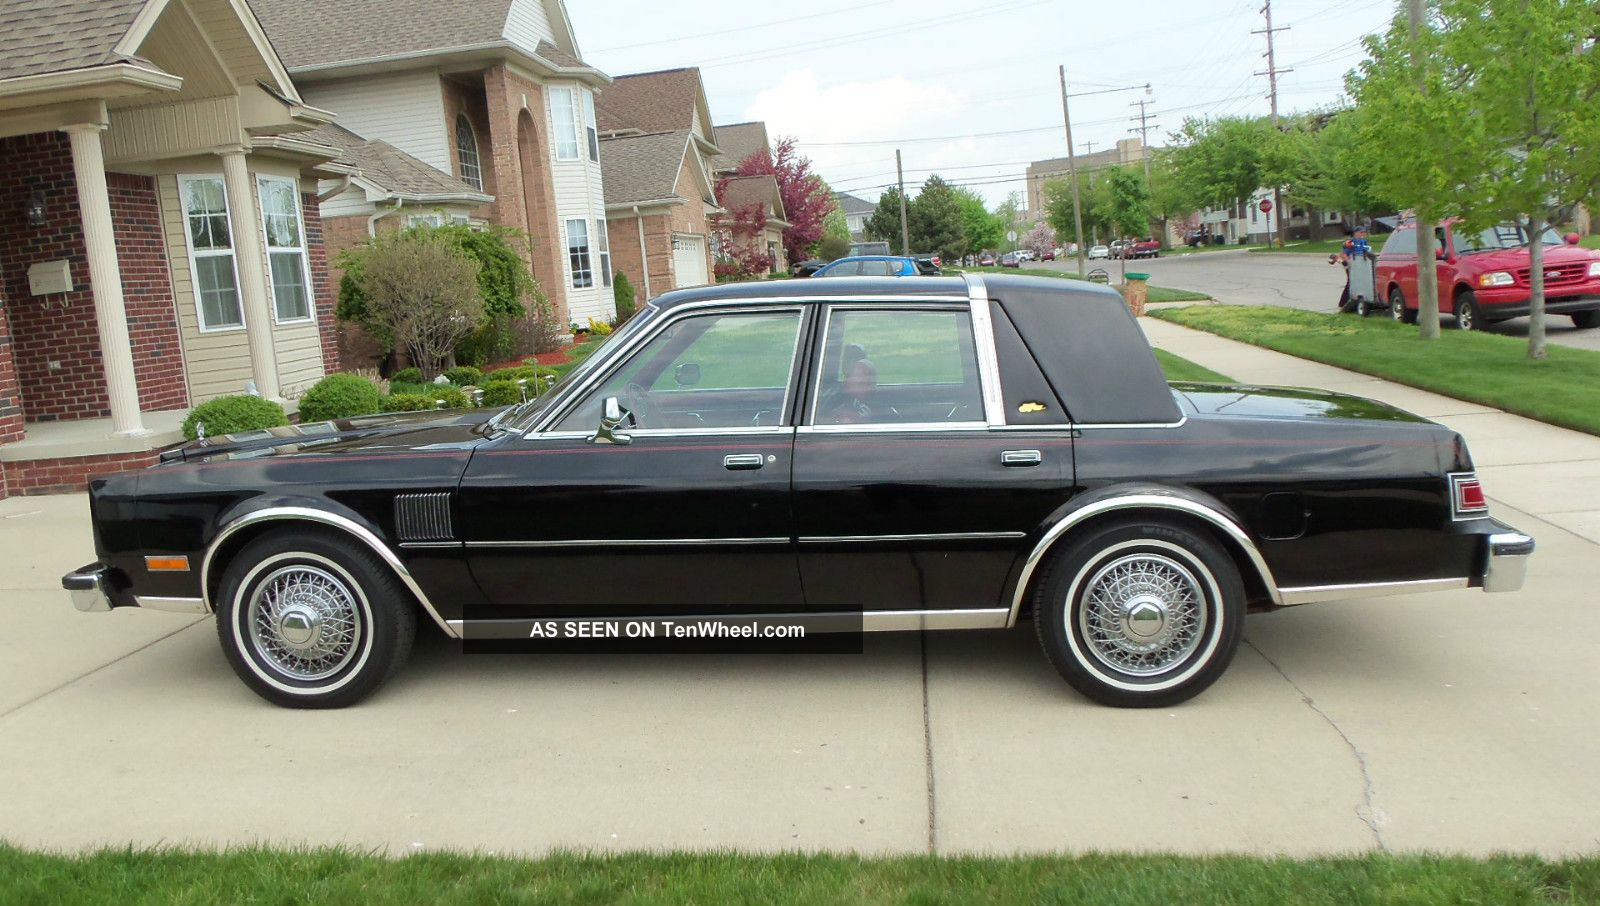 1982 Chrysler Yorker Fifth Avenue 4 Door Sedan 318